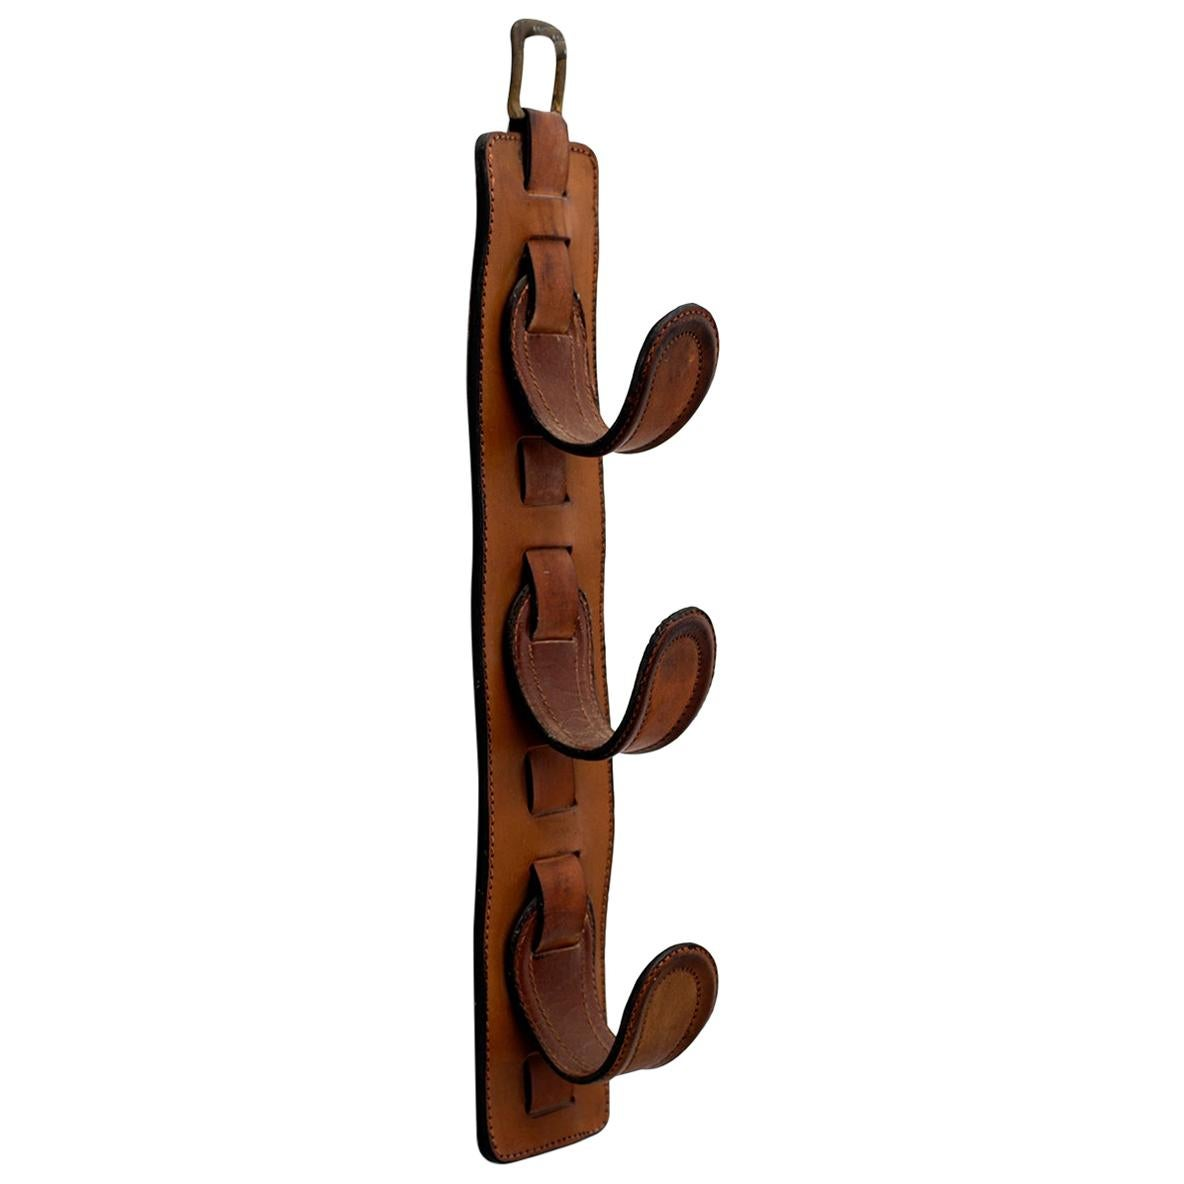 Jacques Adnet Leather Wall Hook